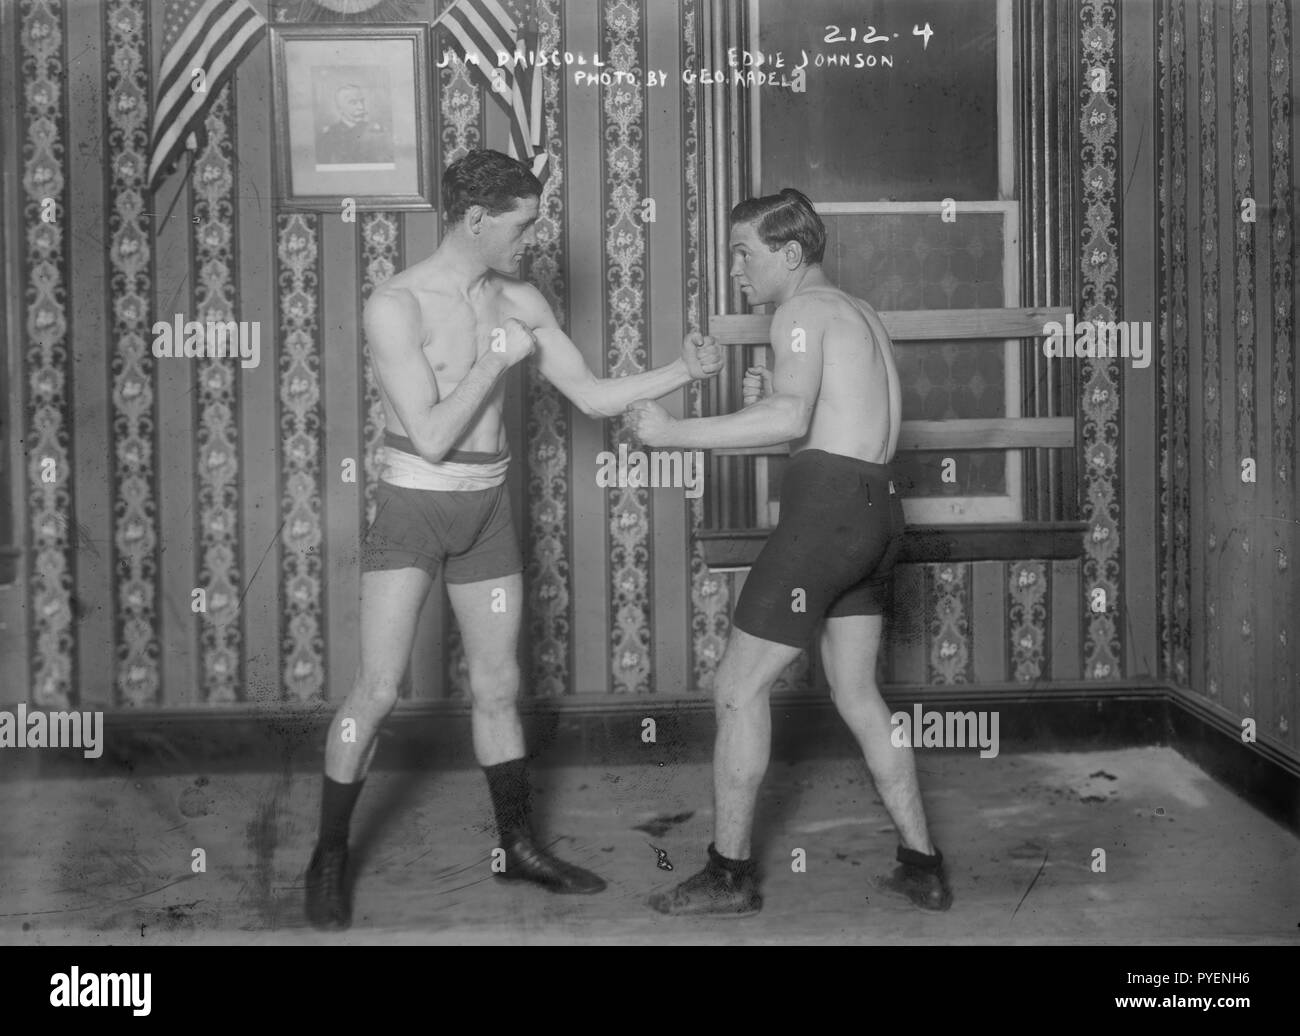 Boxer Peerless Jim 'Jem' Driscoll (1880-1925) born in Cardiff, UK, sparring with Eddie Johnson in 1908/1909 when boxing in USA on tour. - Stock Image